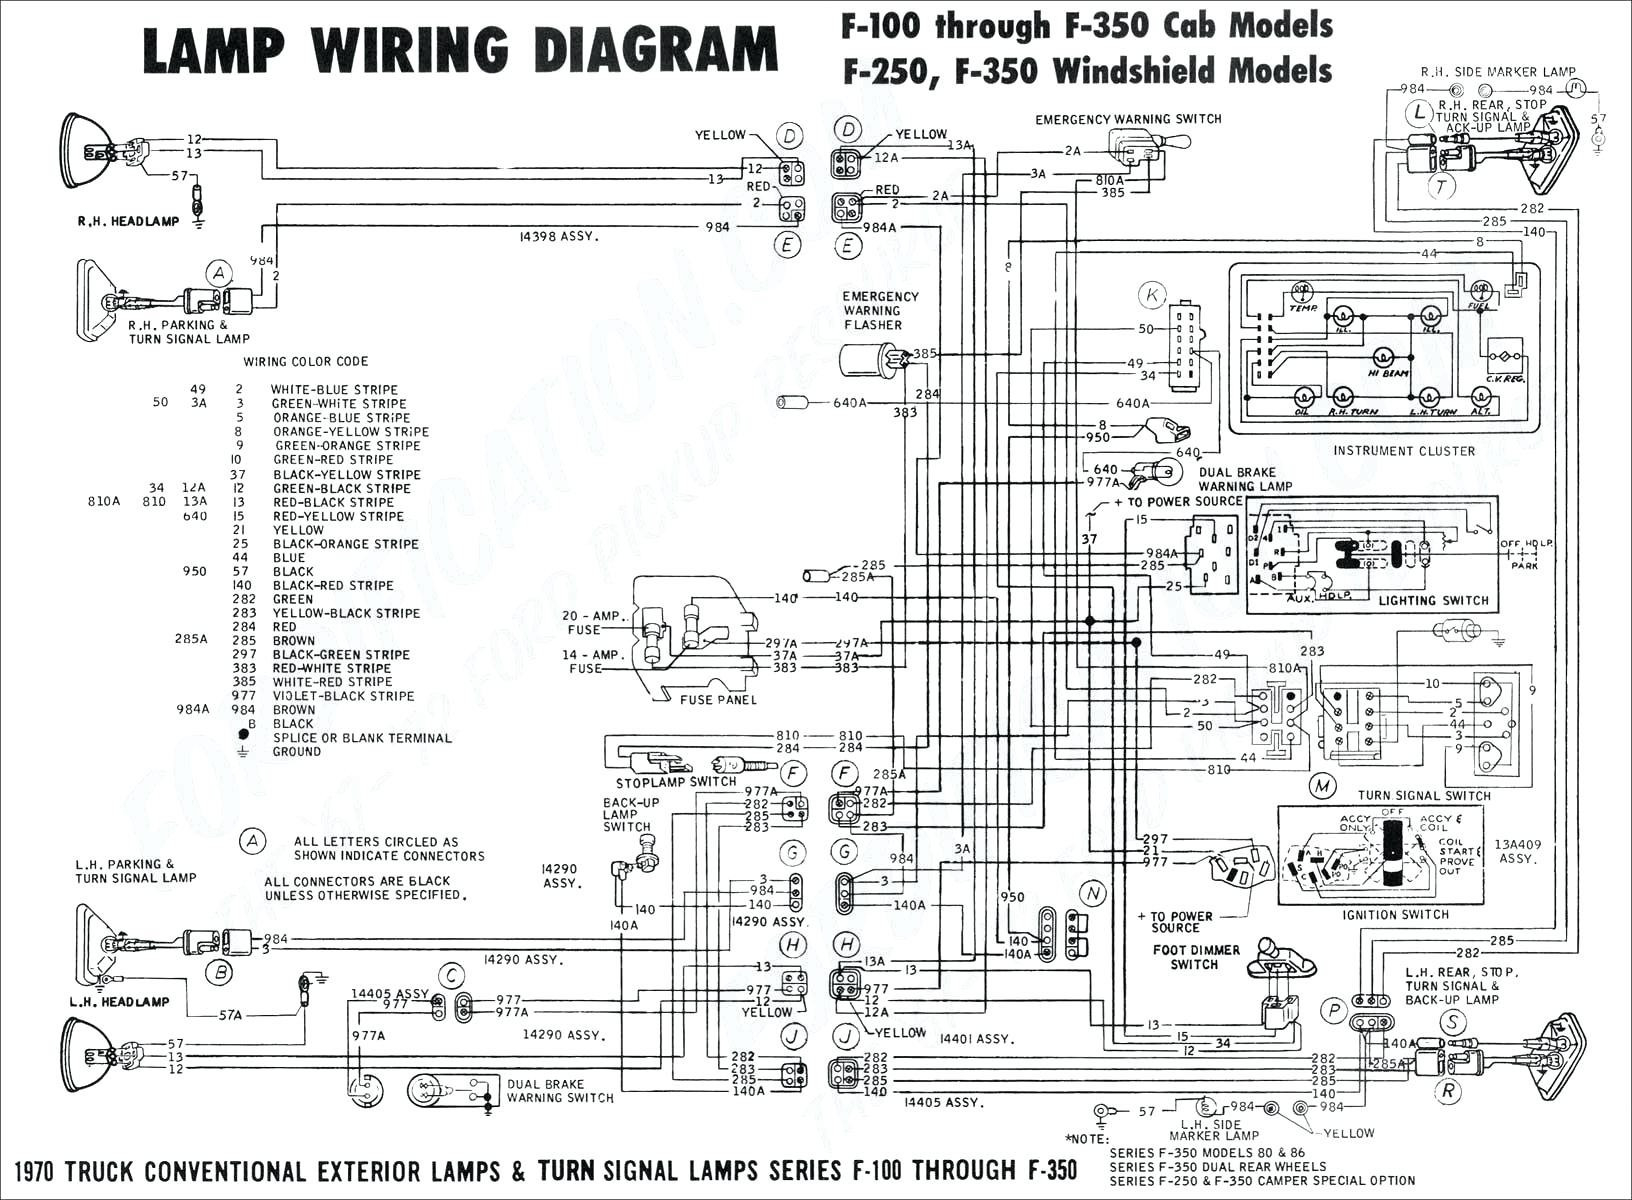 500 Wiring Diagram Polaris Sportsman Wiring Diagram Darren Criss